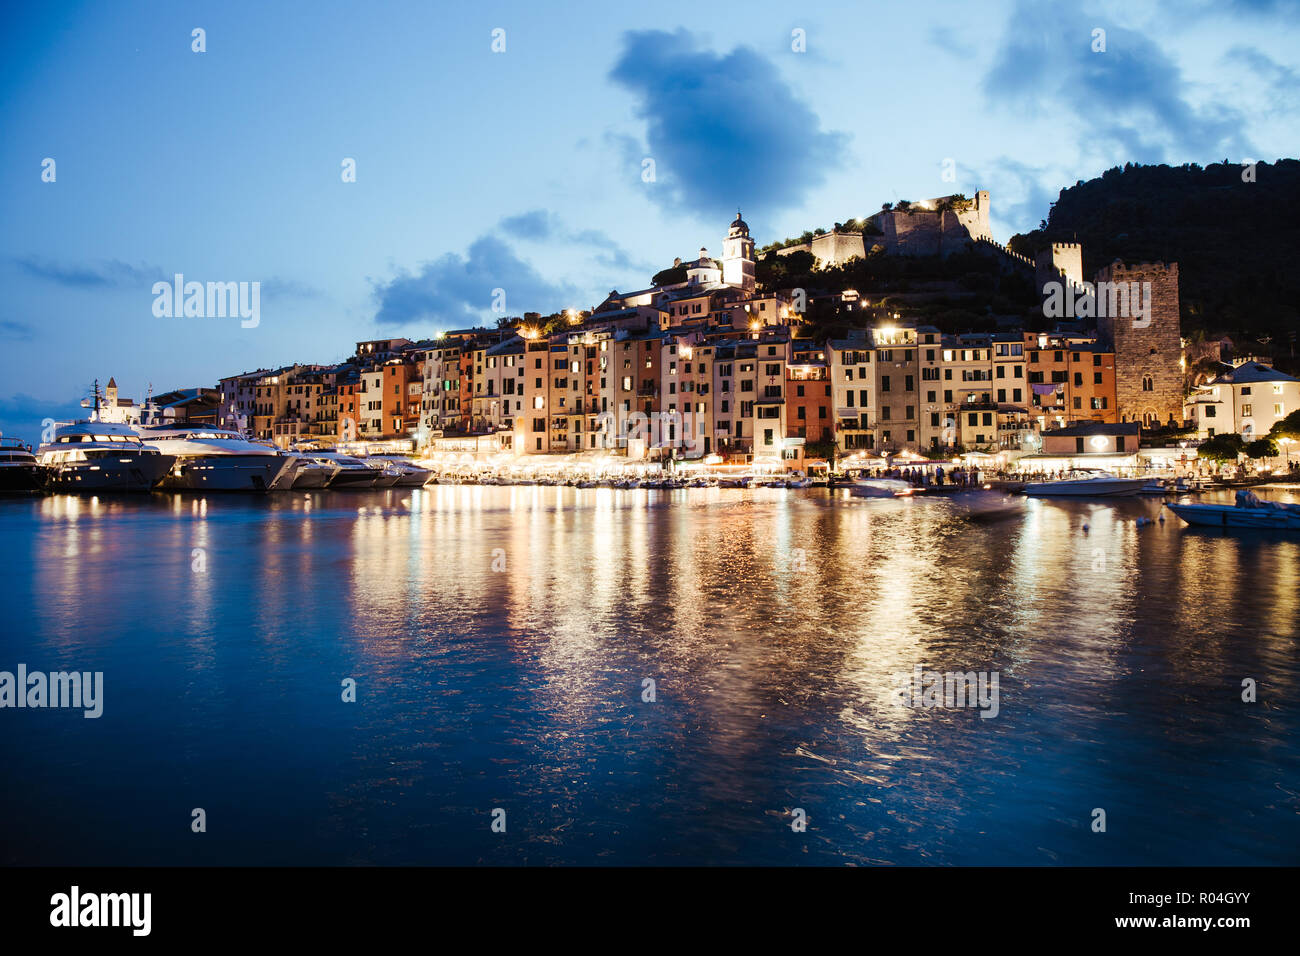 Evocative Portovenere foreshortening after the sunset - Portovenere, Liguria This photo was taken in July during the blue hour. Stock Photo